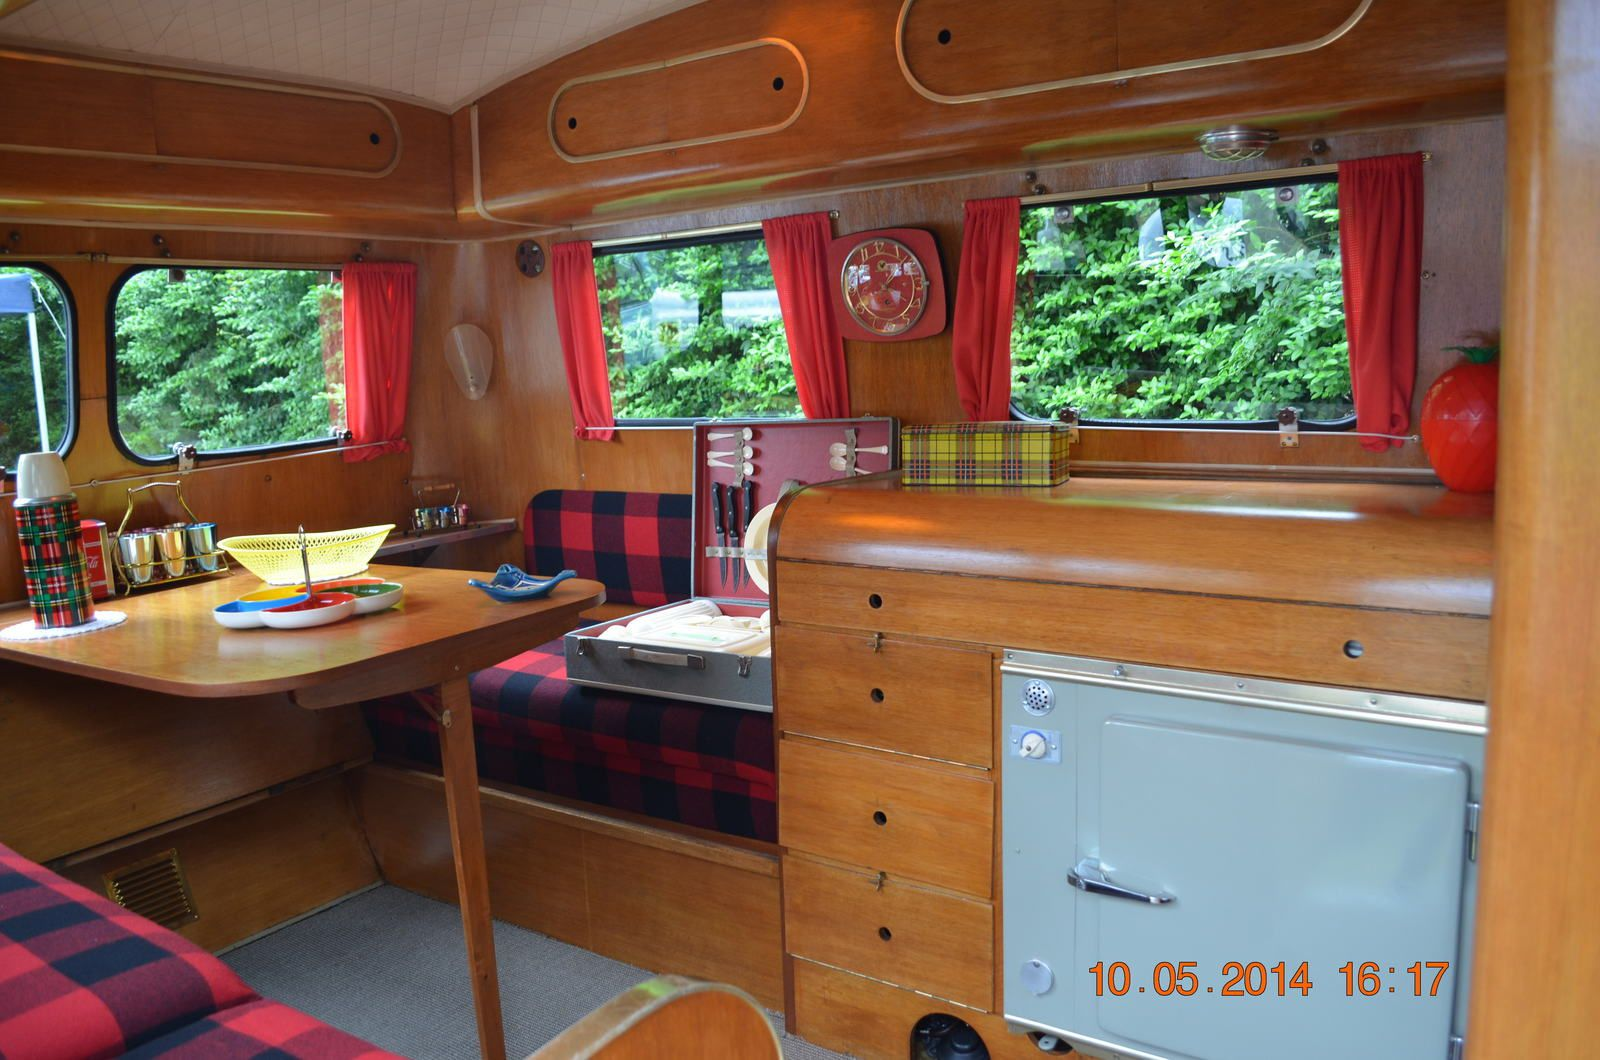 Molsheim 2014 le blog des cox vintage et old speed for Interieur westfalia